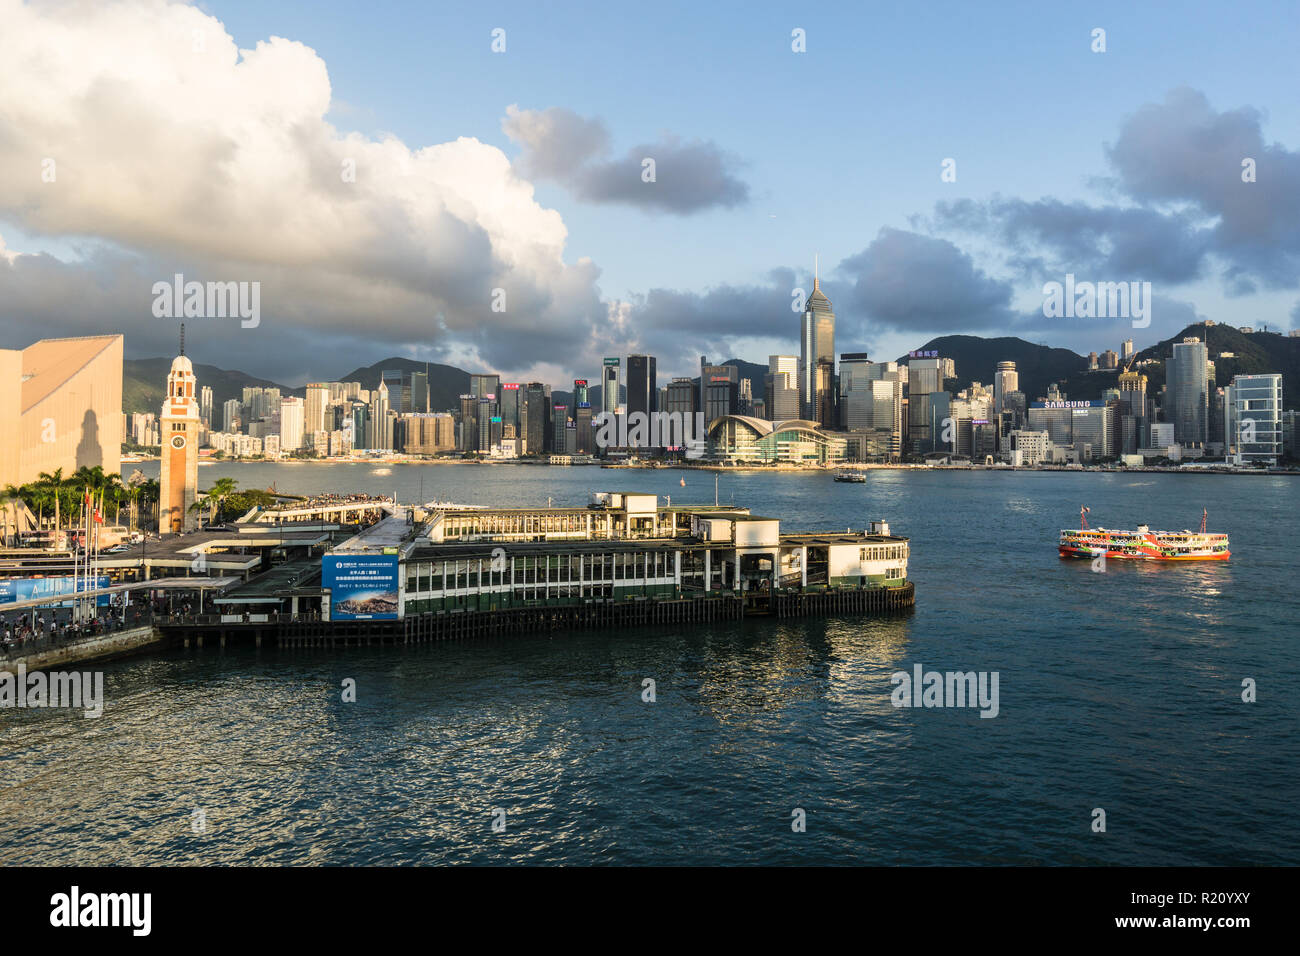 Hong Kong, China - May 15 2018: Aerial view of a Star Ferry  reaching his pier in Kowloon with Hong Kong island skyline. - Stock Image